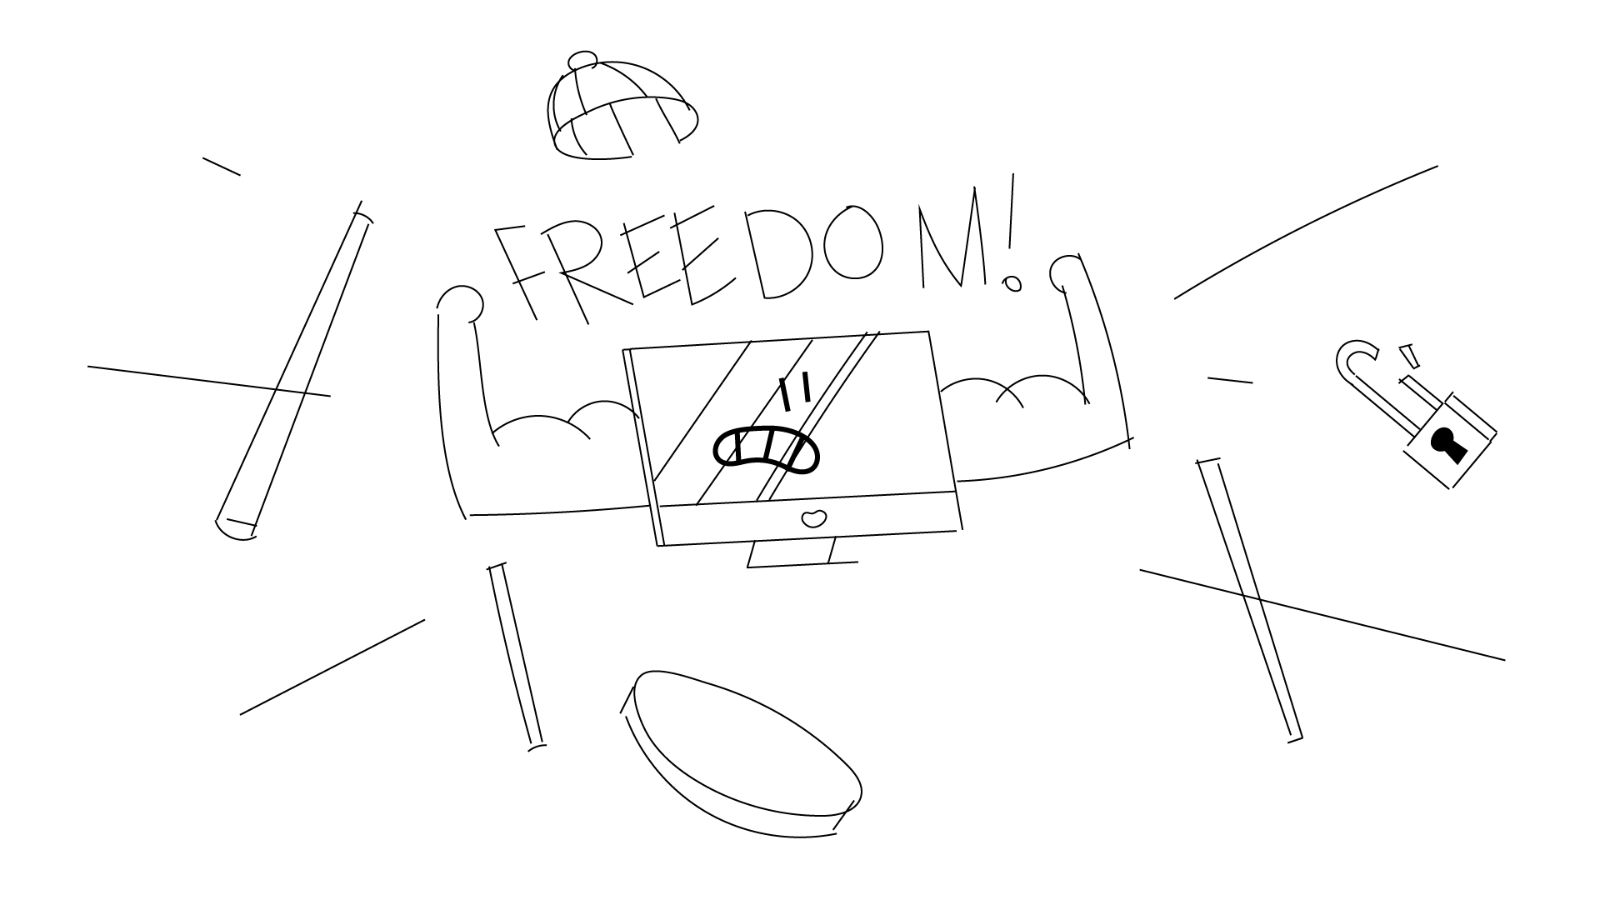 Sketch for a video about Open Source, by Iluli. It shows a computer breaking from a cage